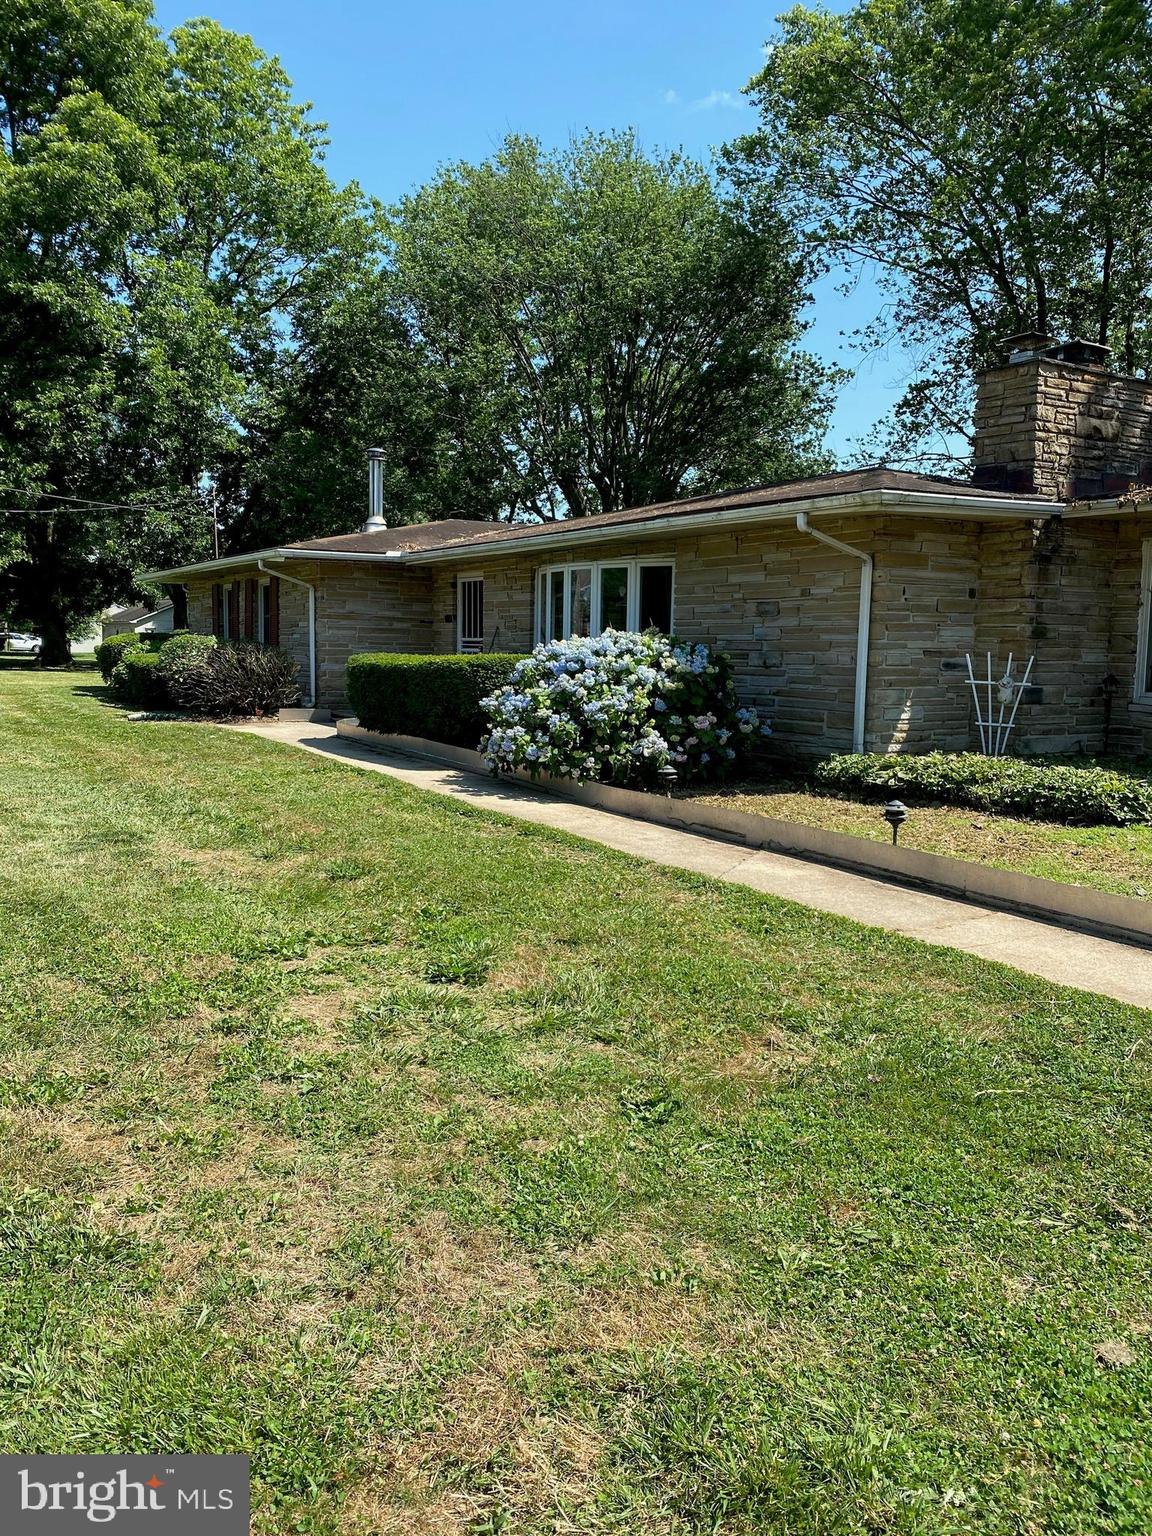 All offers due by Sunday, Sept 12 @ 5pm.  Large, 4-bedroom 2 1/2 bath Stone Rancher in highly desire